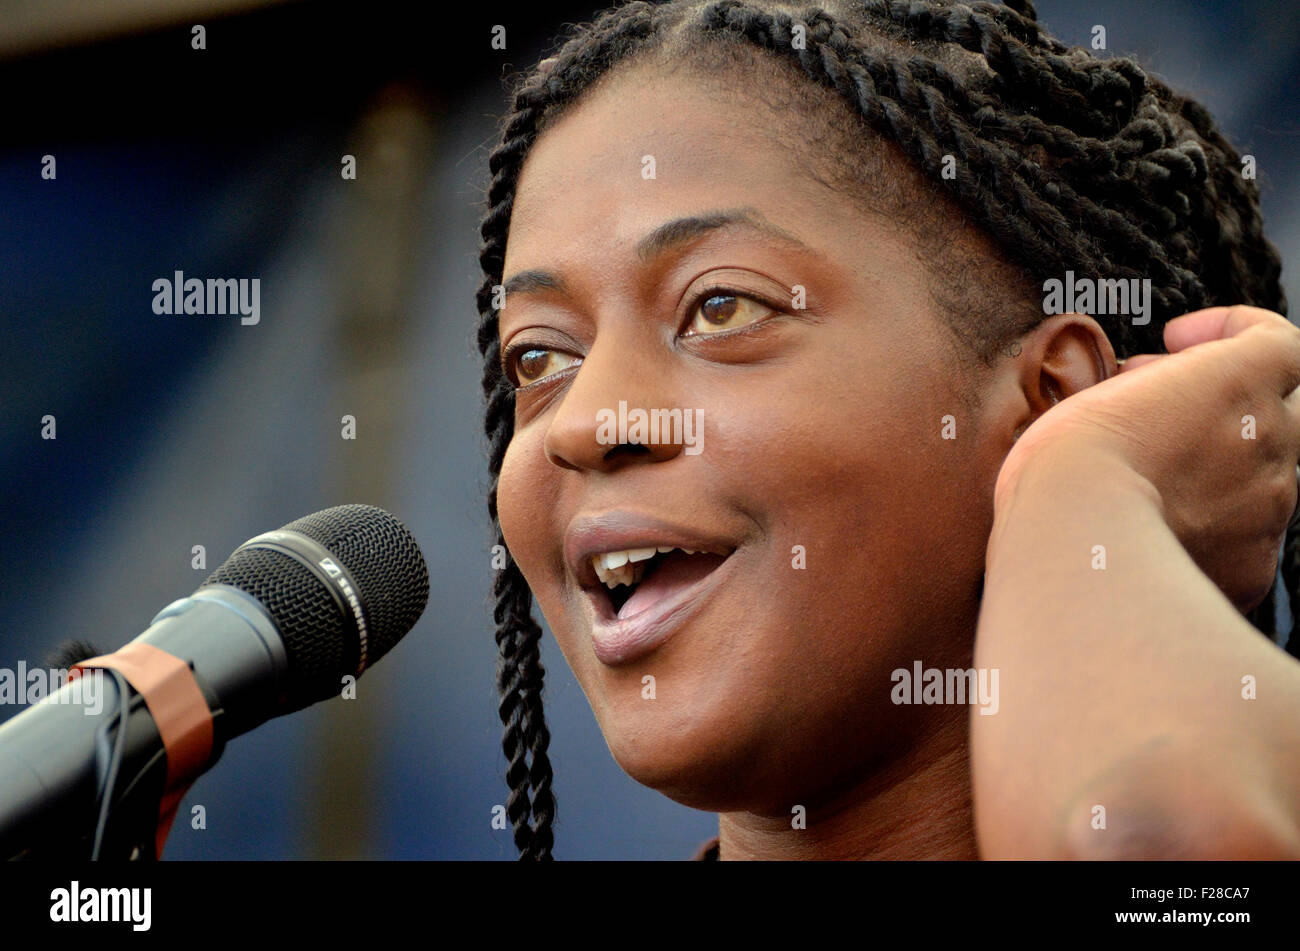 Ava Vidal British Comedian Speaking At The Refugees Welcome Here Rally In Parliament Square London 12th Sept 2015